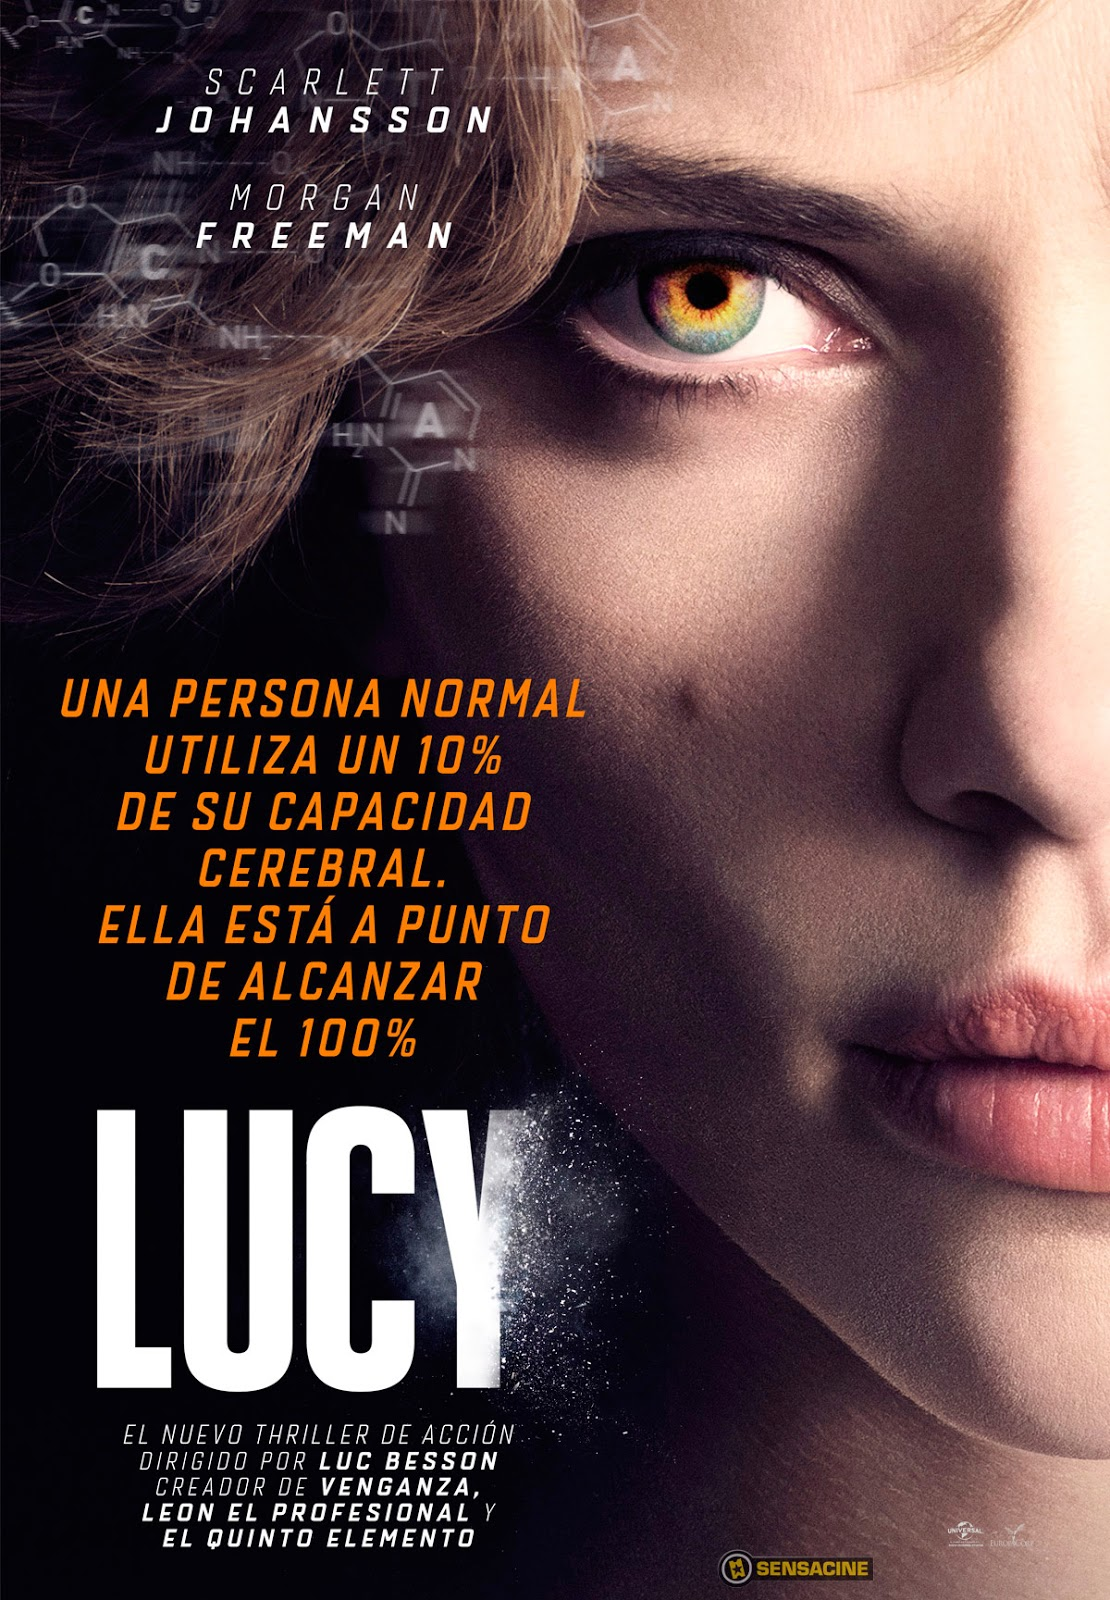 Lucy (2014) Ver gratis online en vivo streaming sin descarga ni torrent